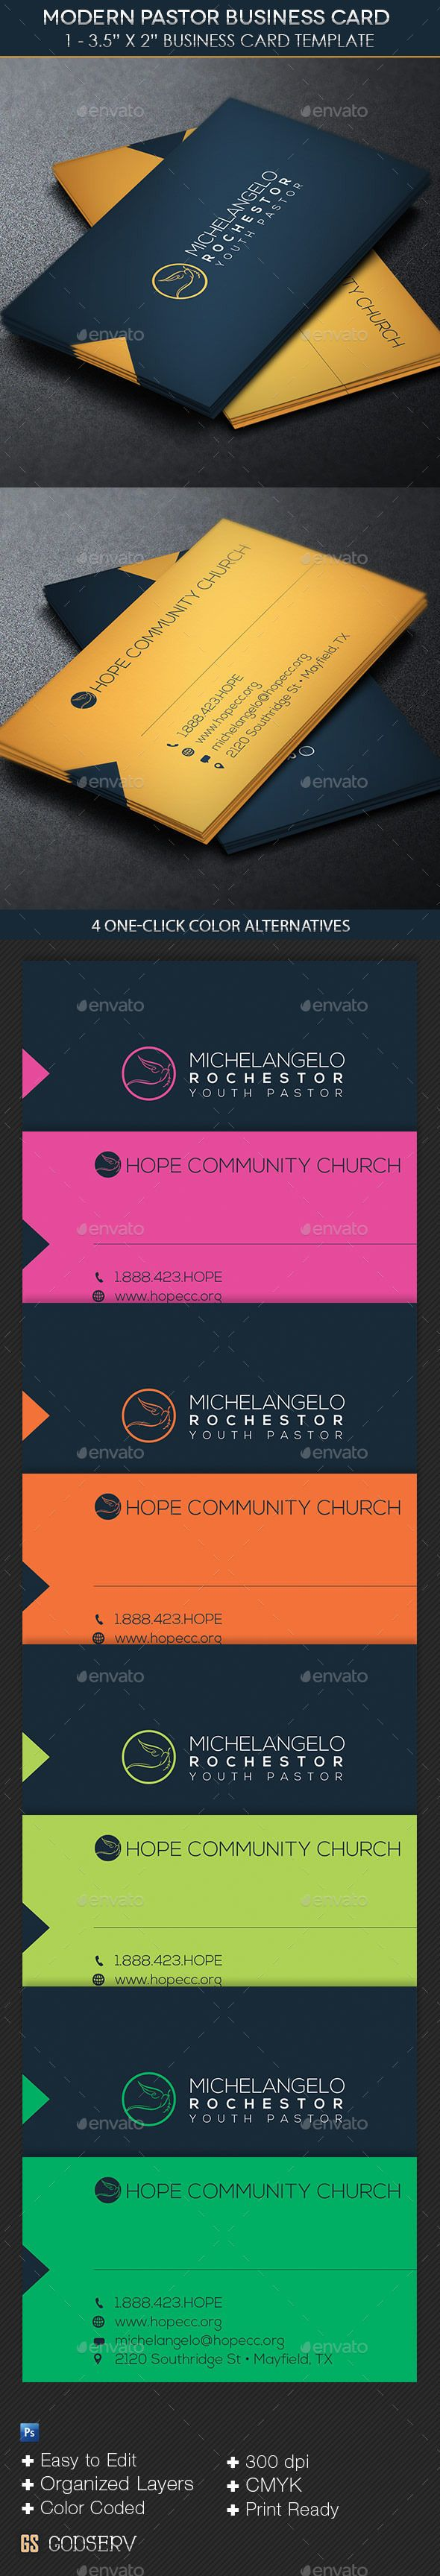 Modern Pastor Business Card Template